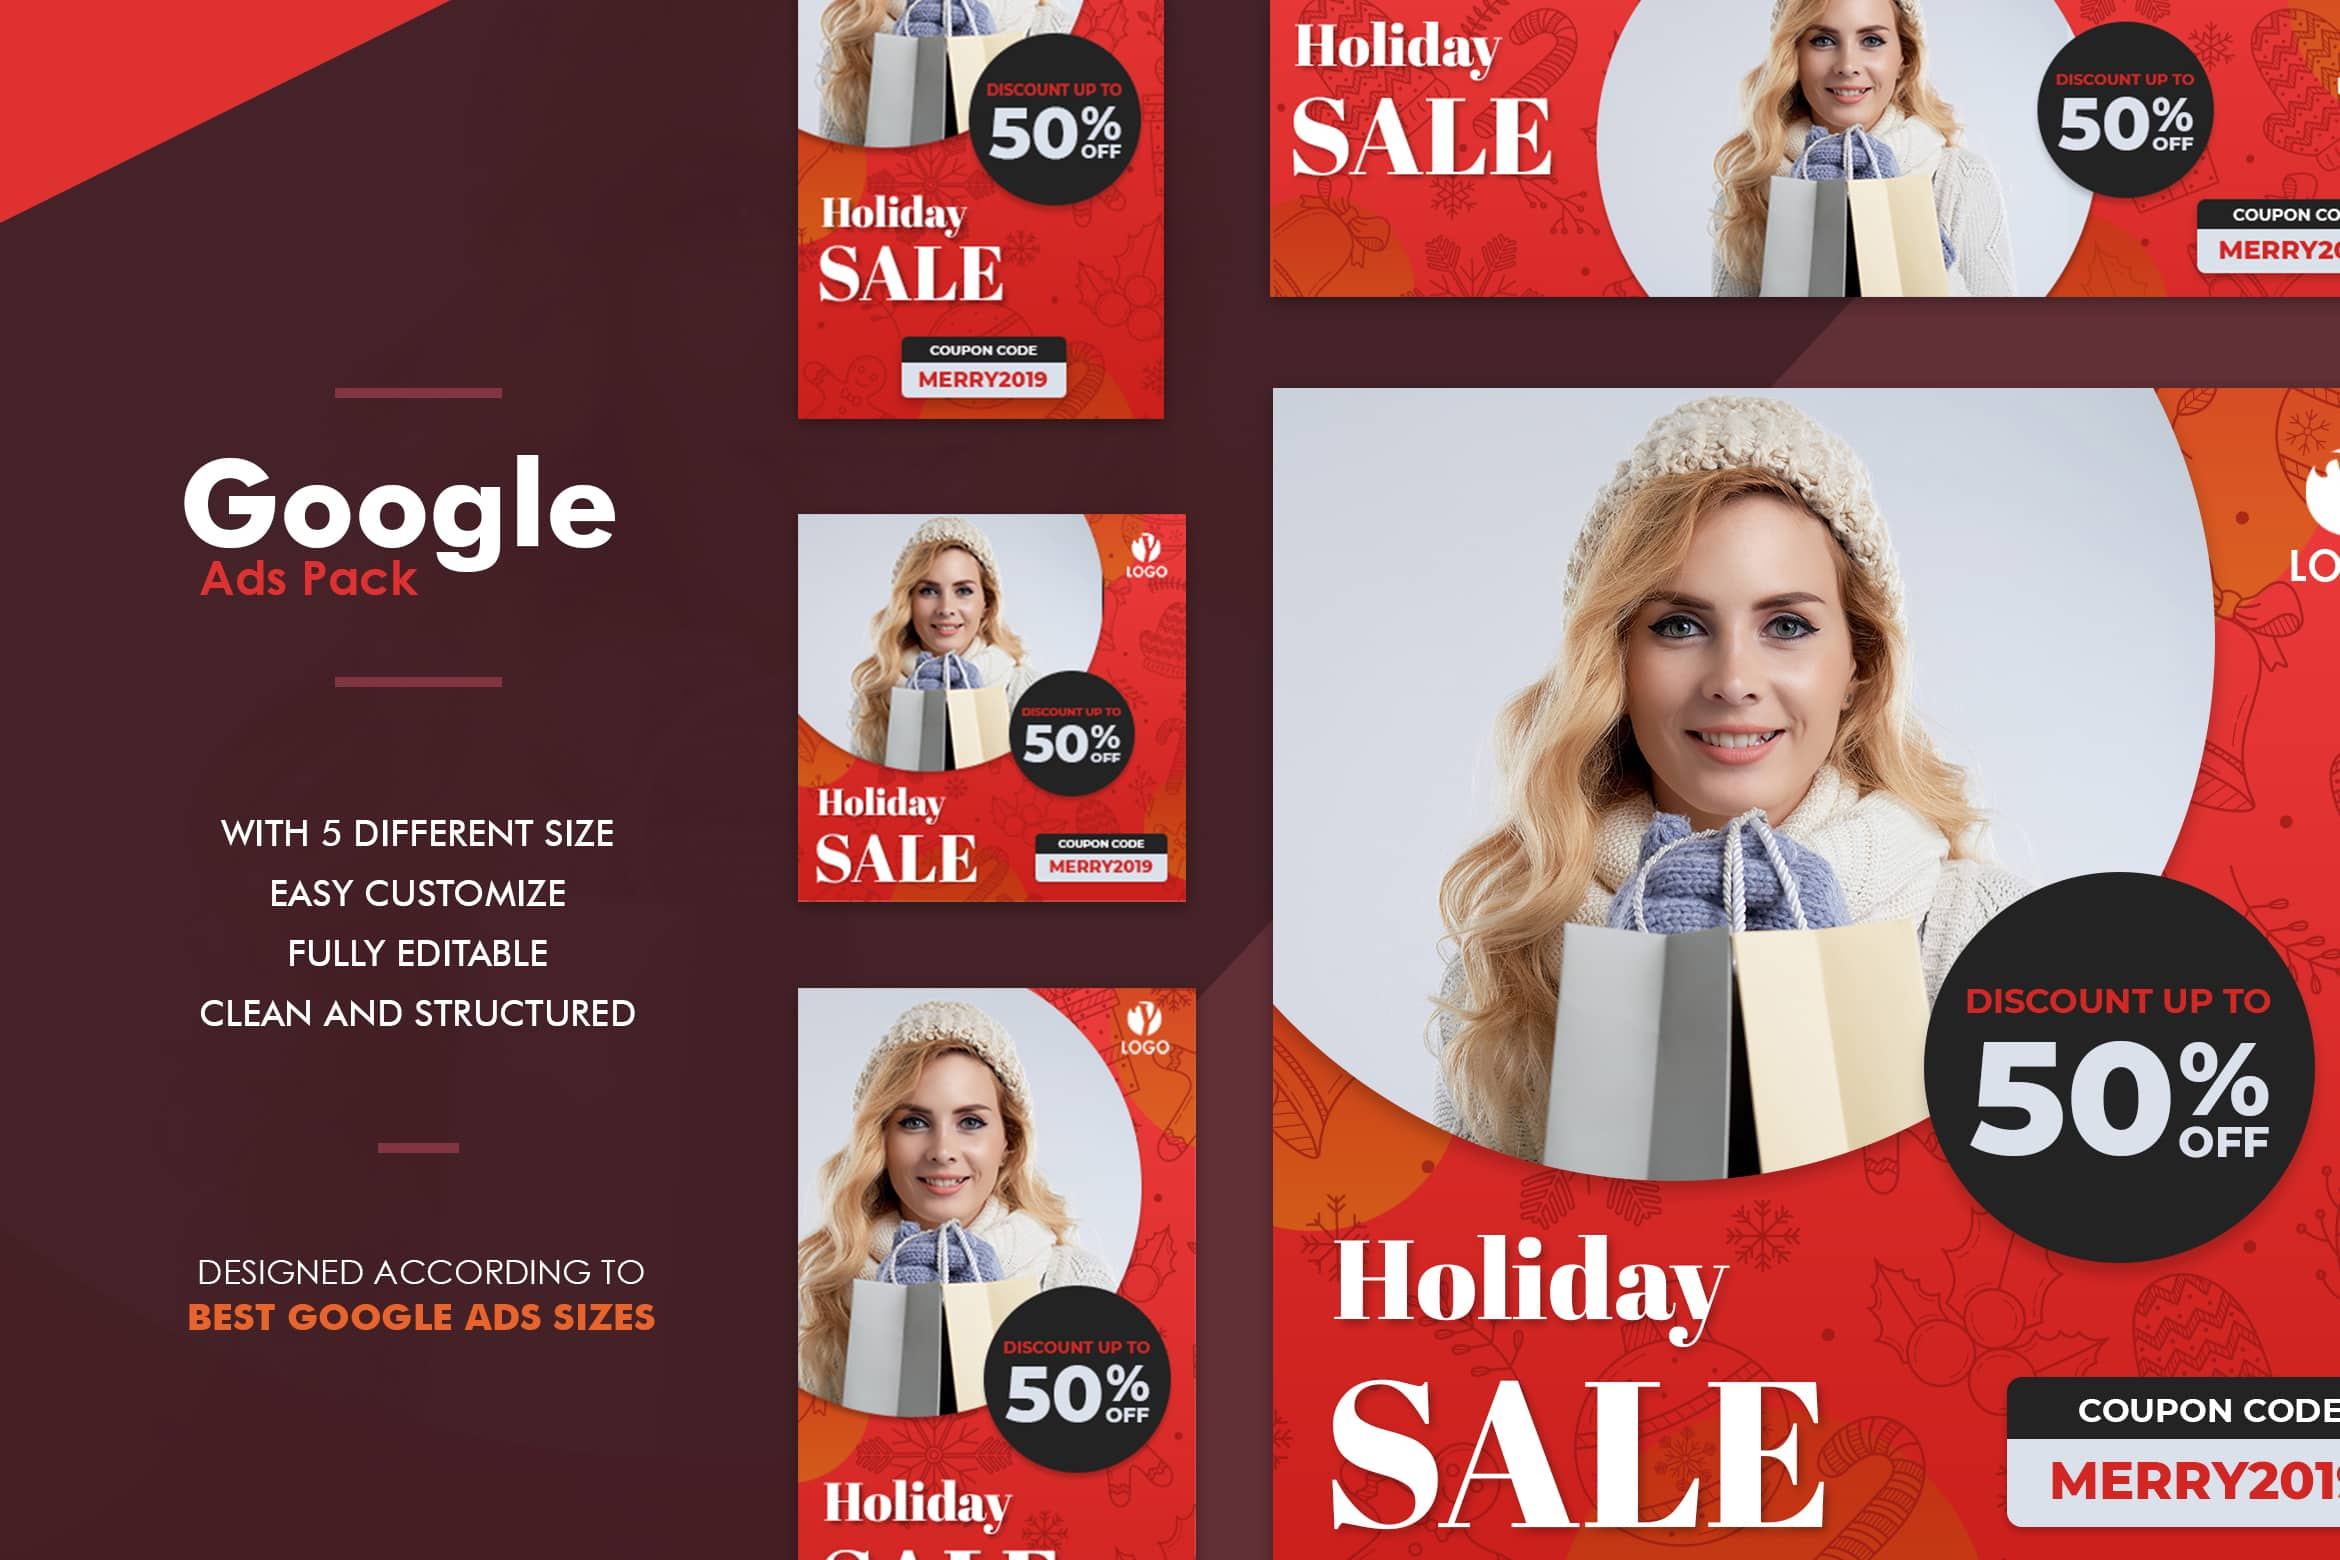 Google Ads Web Banner - Holiday Sale